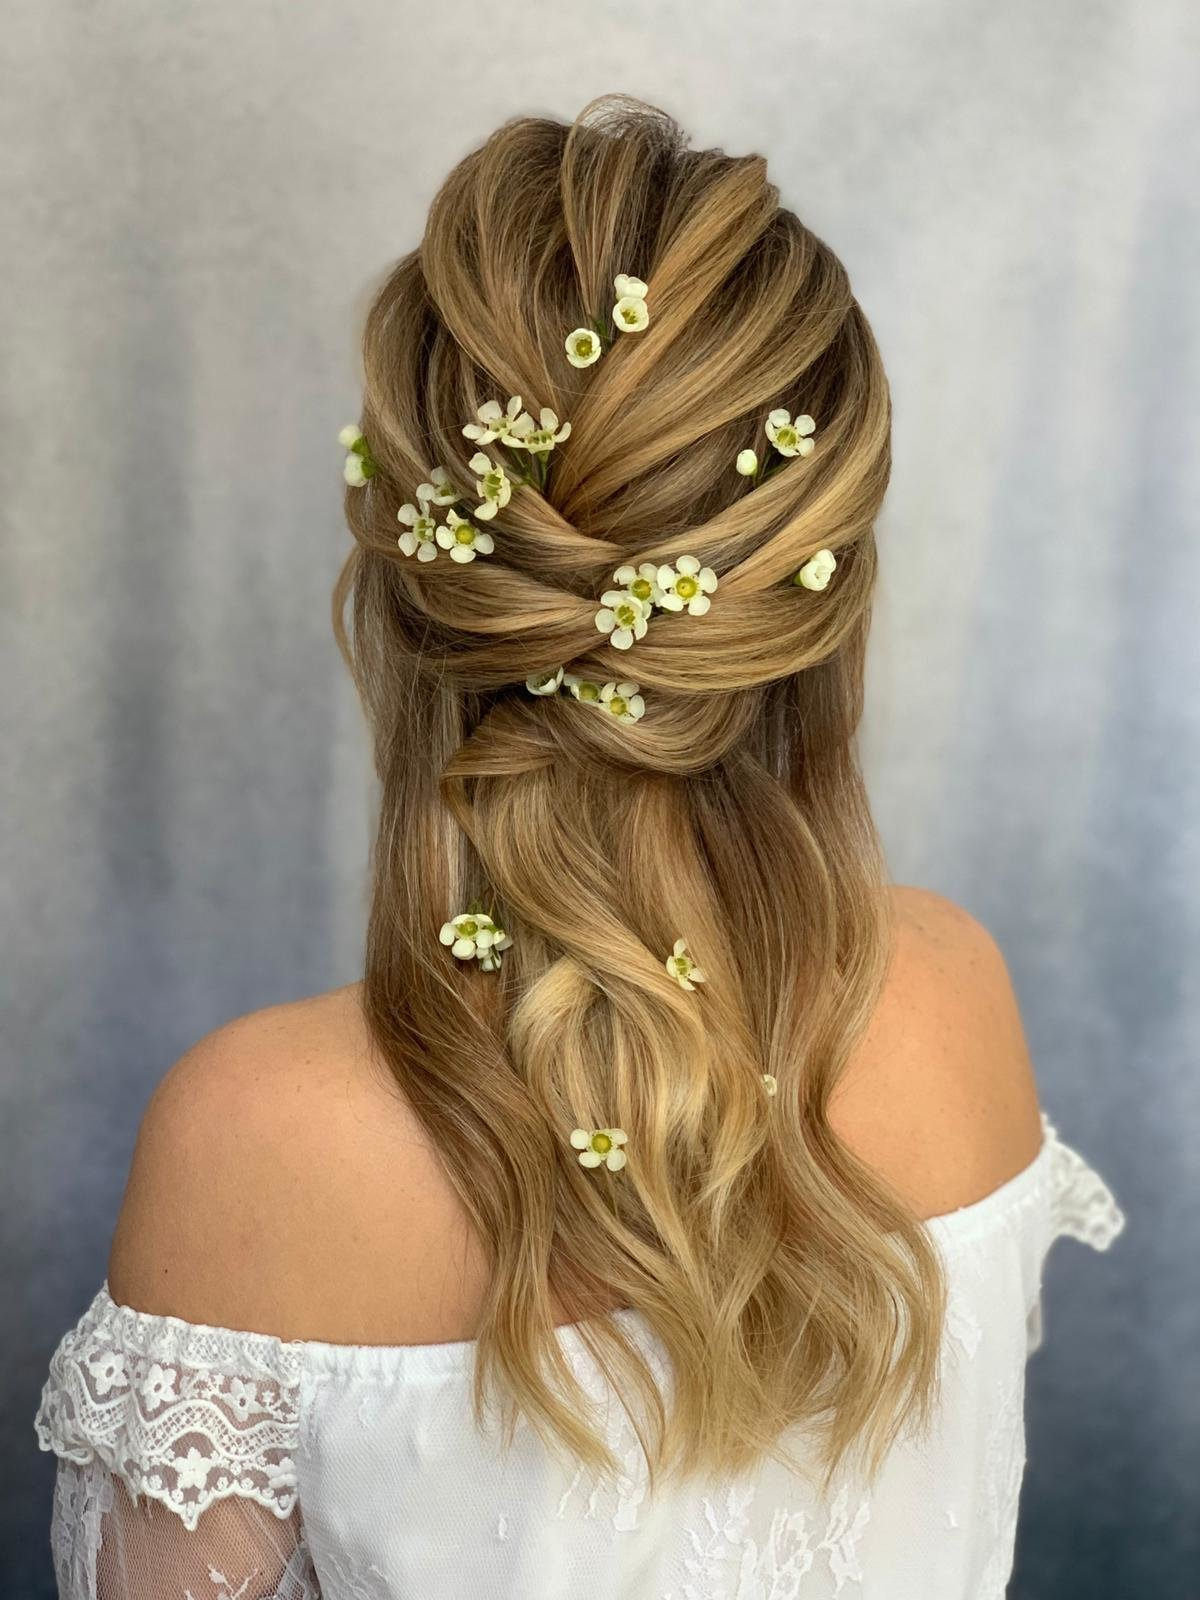 jessica rose bridal hair 3